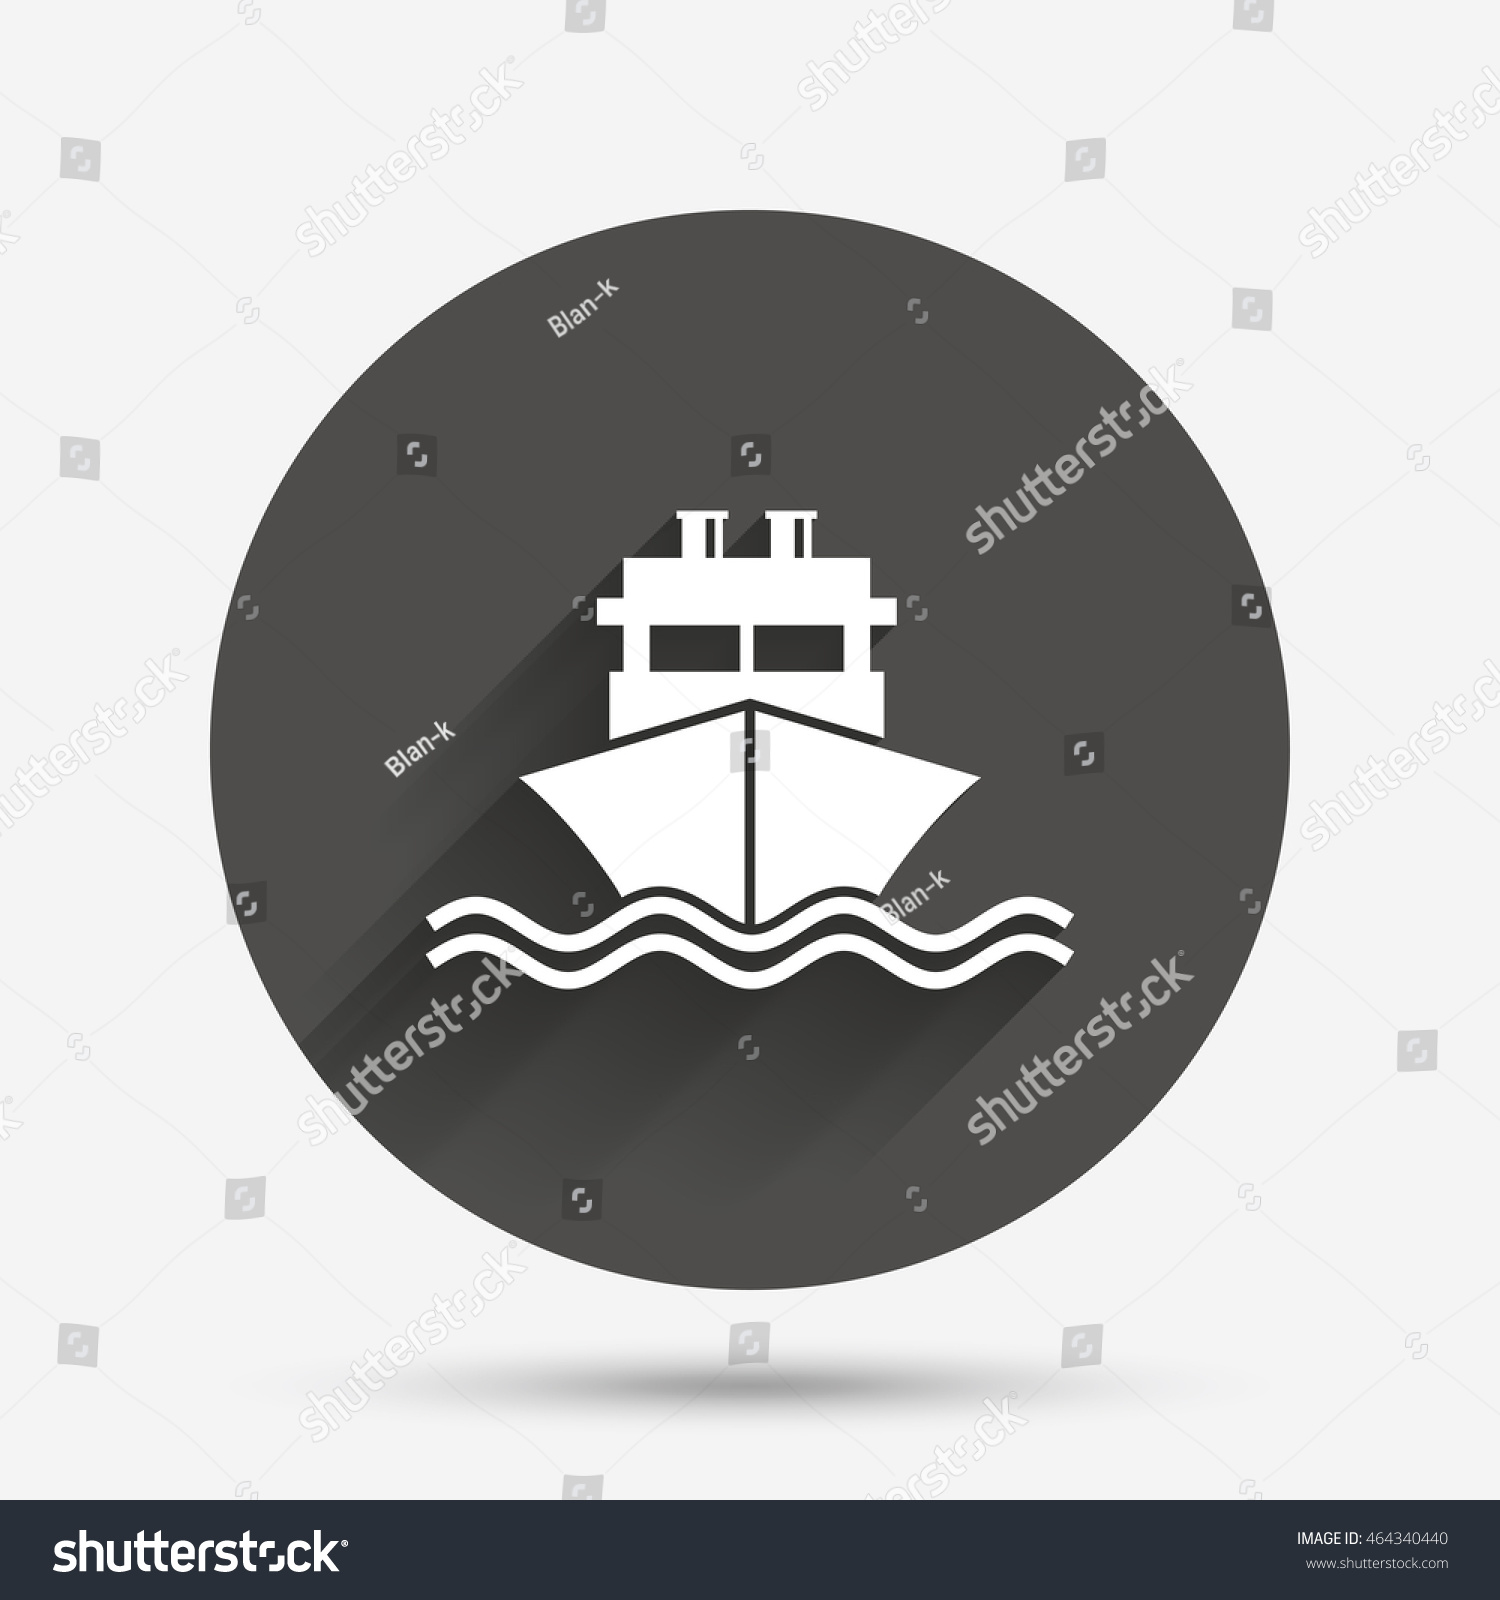 Ship boat sign icon shipping delivery stock illustration 464340440 ship or boat sign icon shipping delivery symbol with chimneys or pipes circle buycottarizona